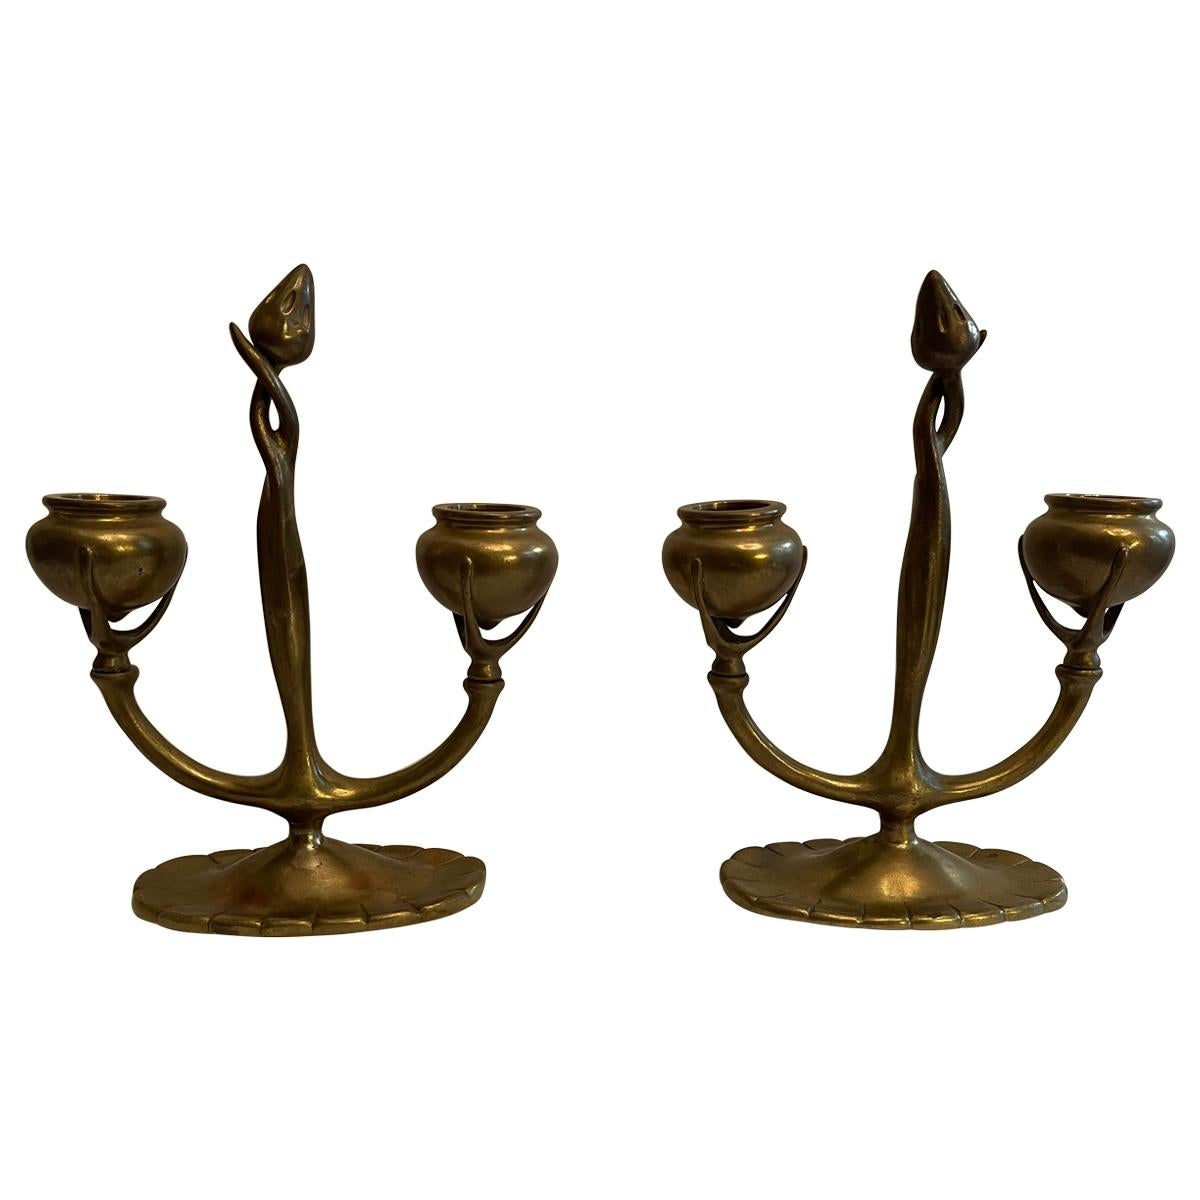 Wonderful Pair of Tiffany Studios Dore Bronze Art Nouveau Two Arm Candelabras